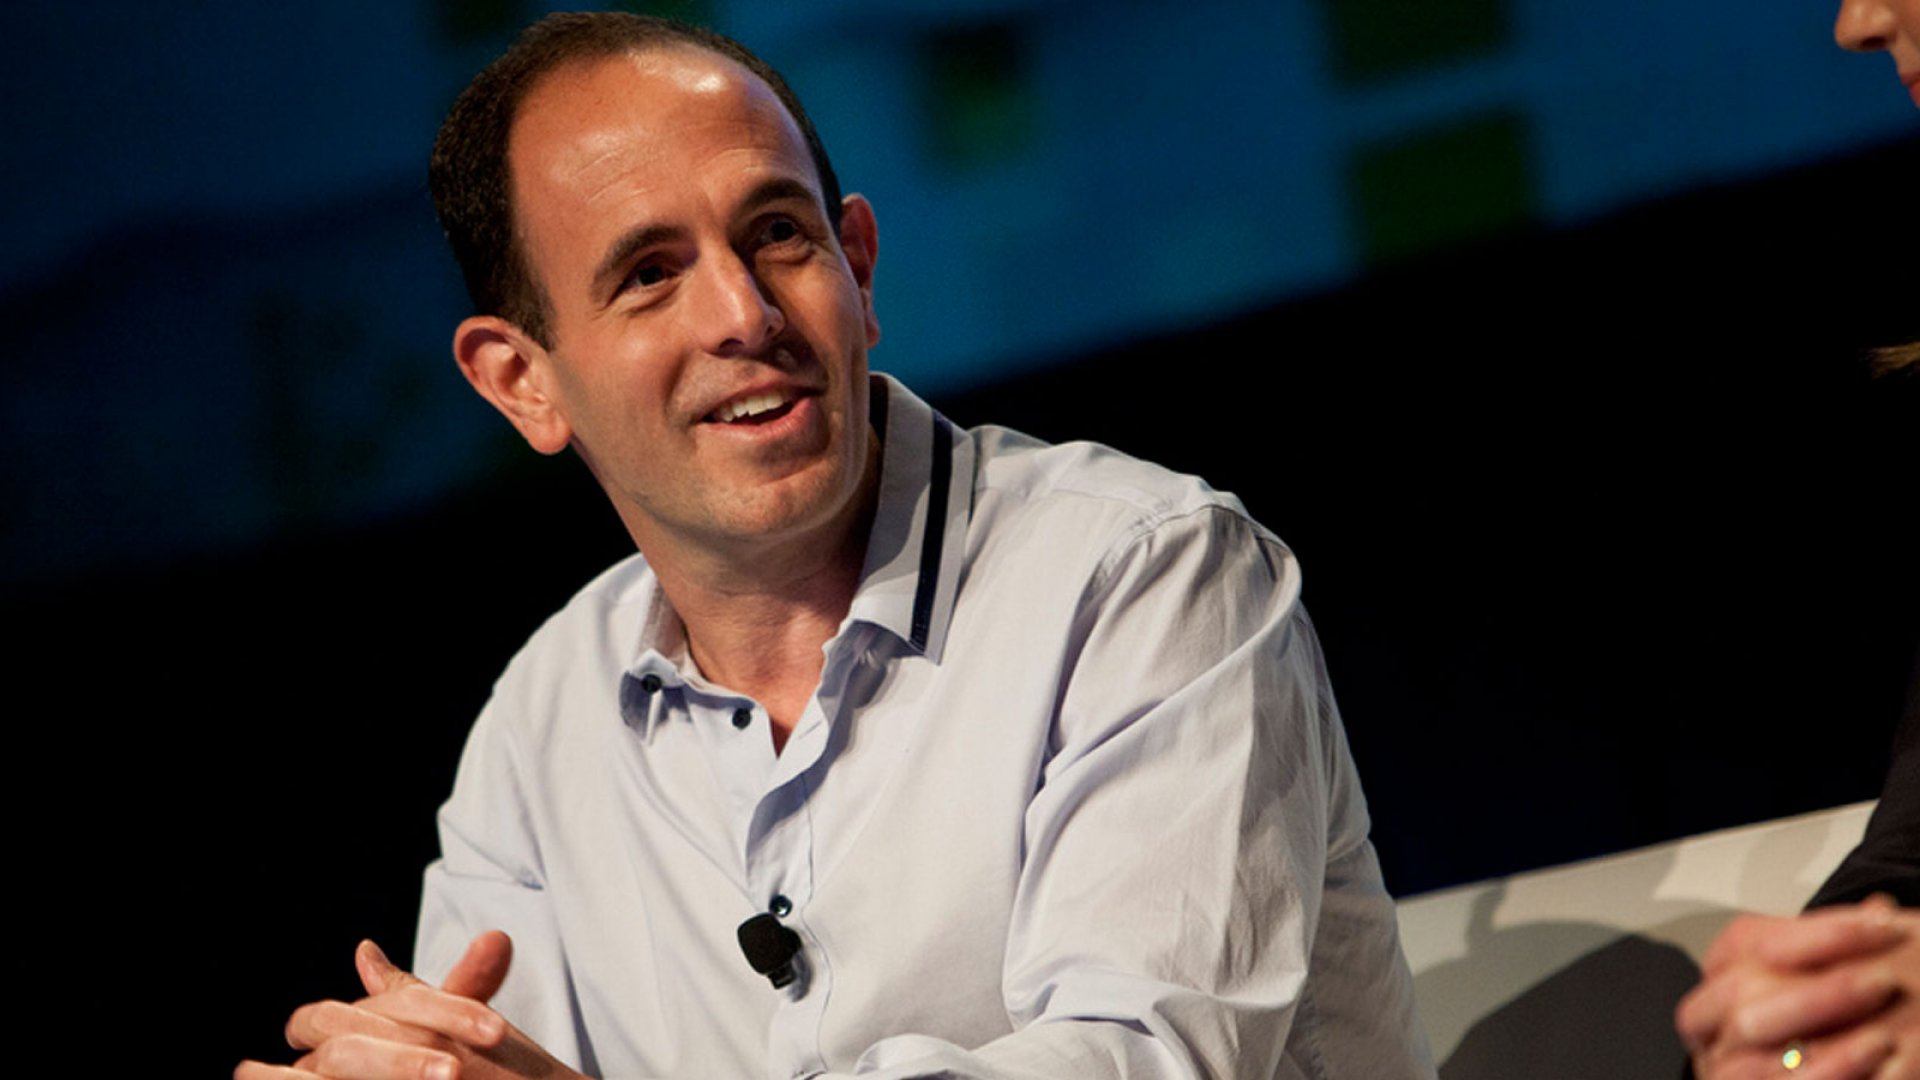 VC Keith Rabois: 5 Things Every Entrepreneur Should Know